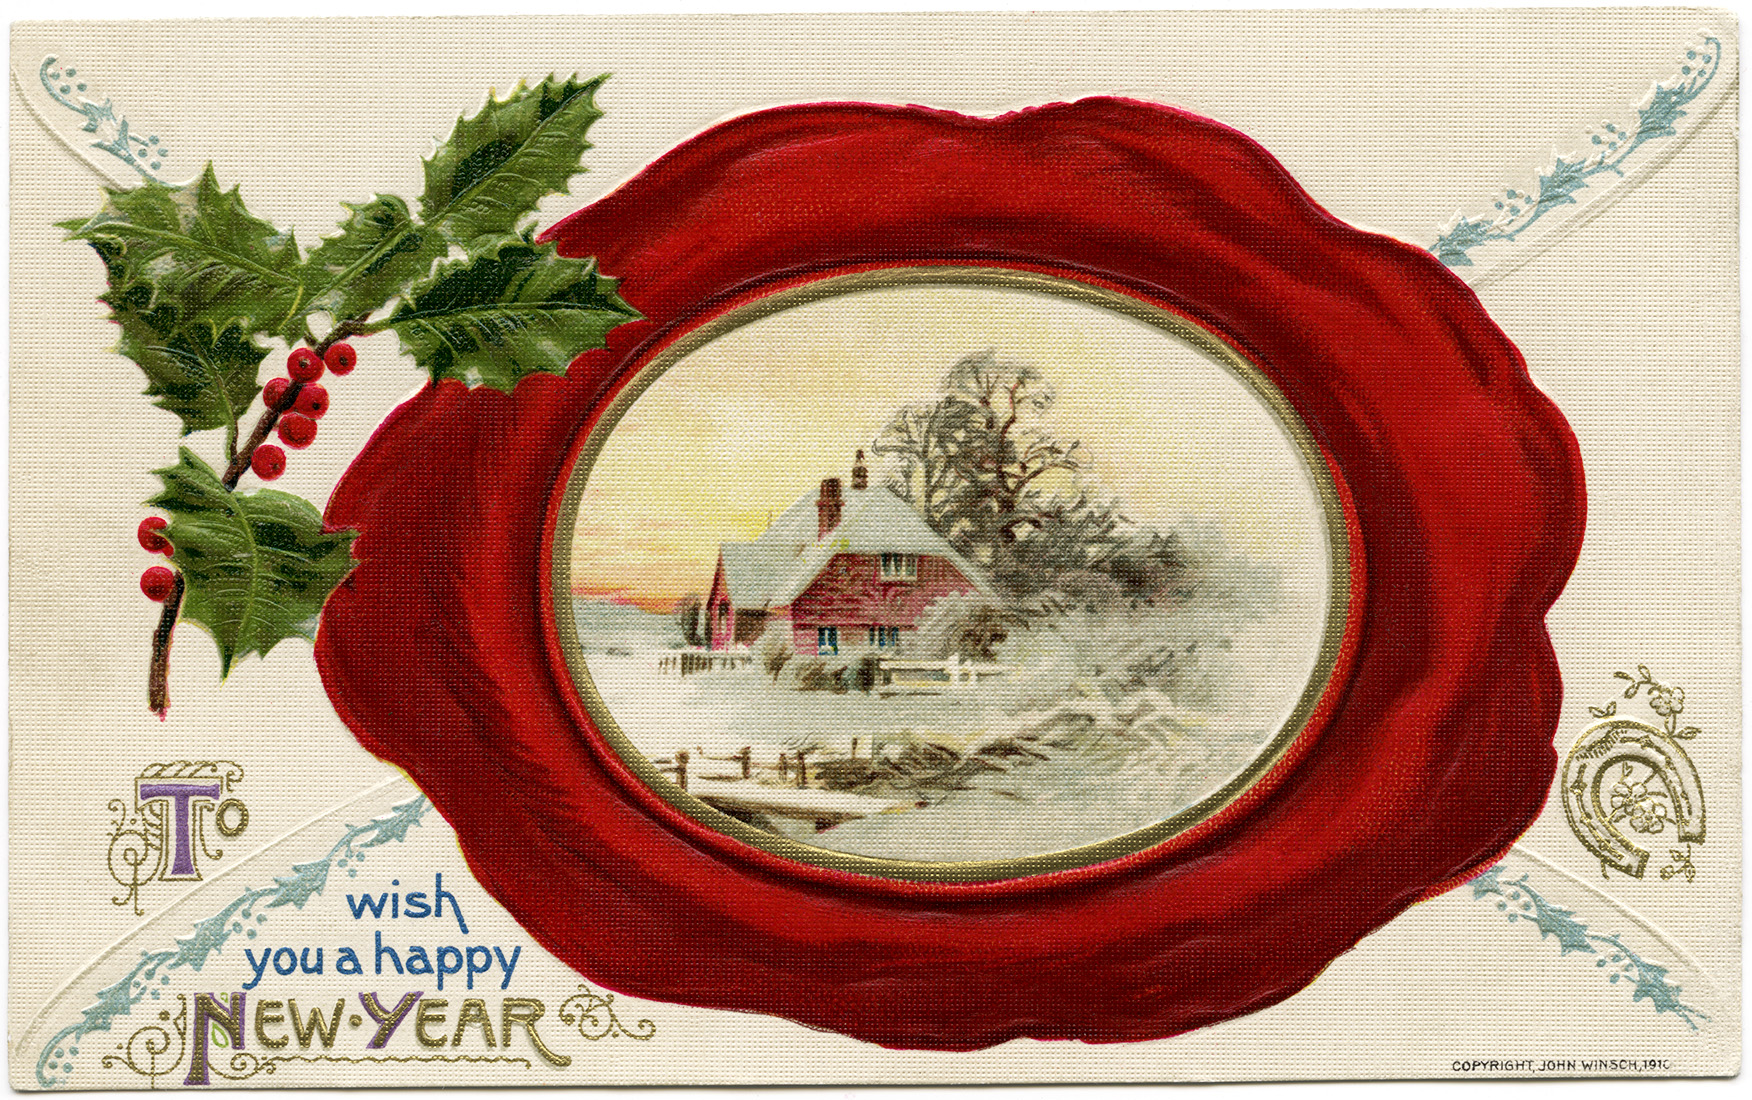 winsch new year postcard image